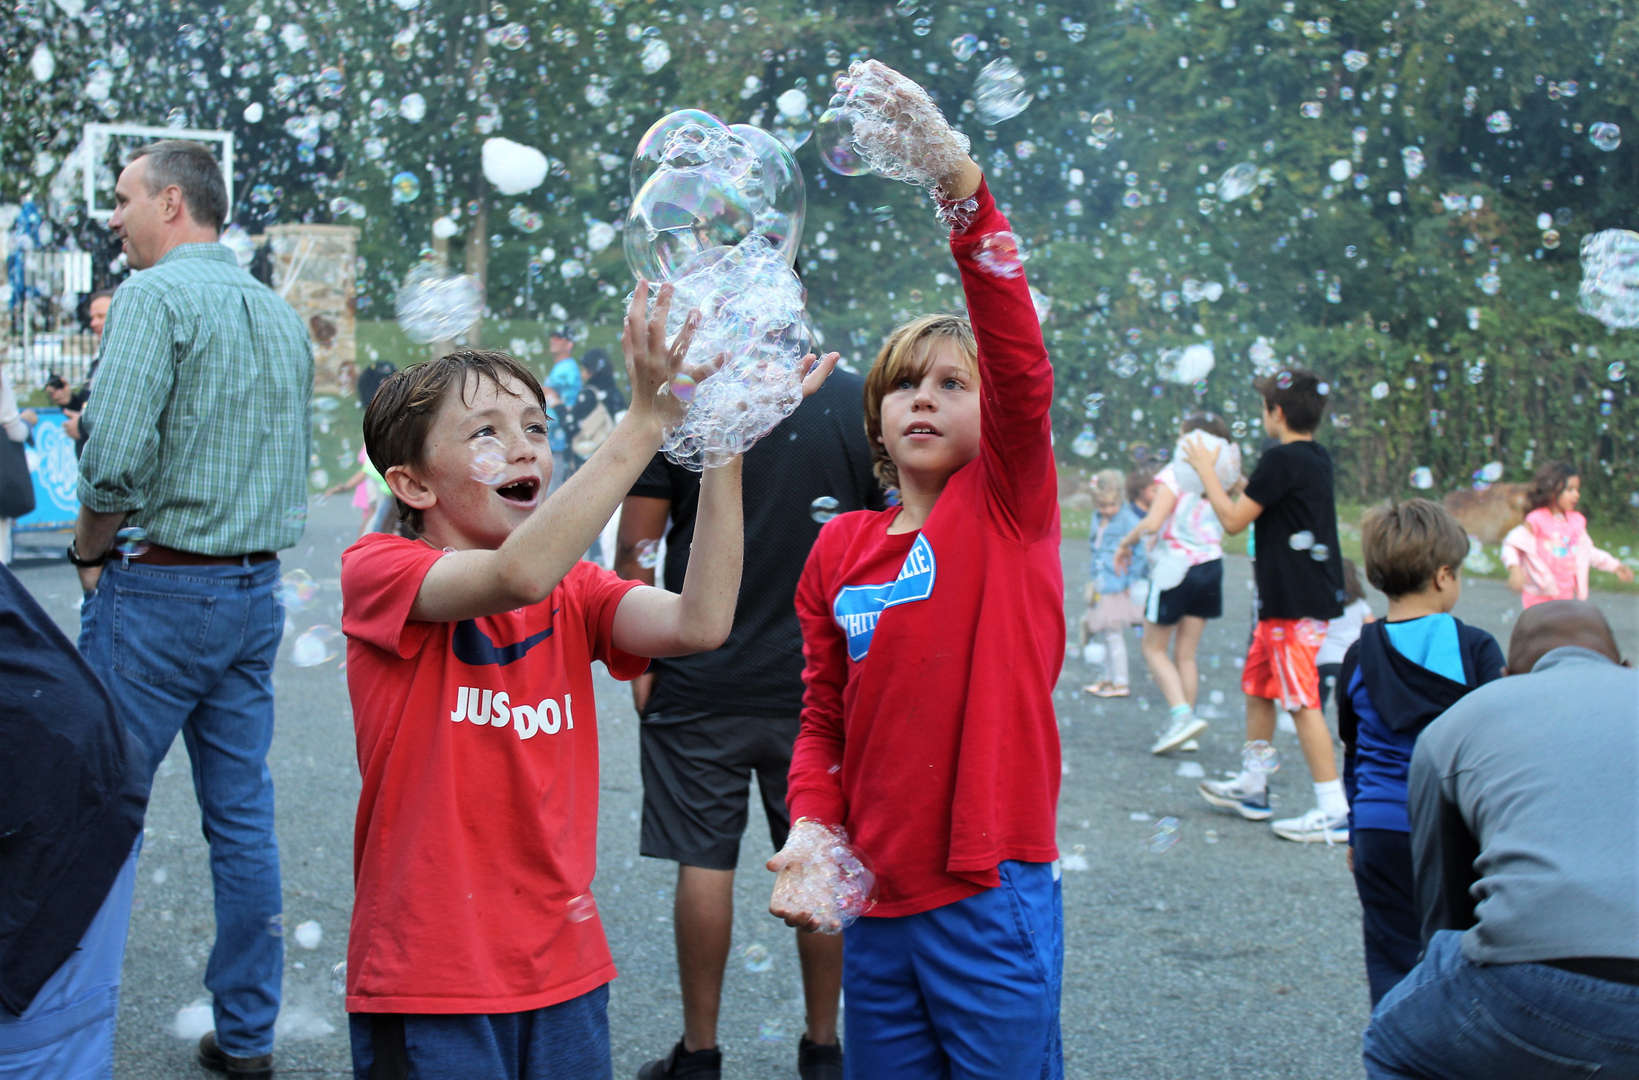 Two boys are collecting bubbles from the Bubble Bus.